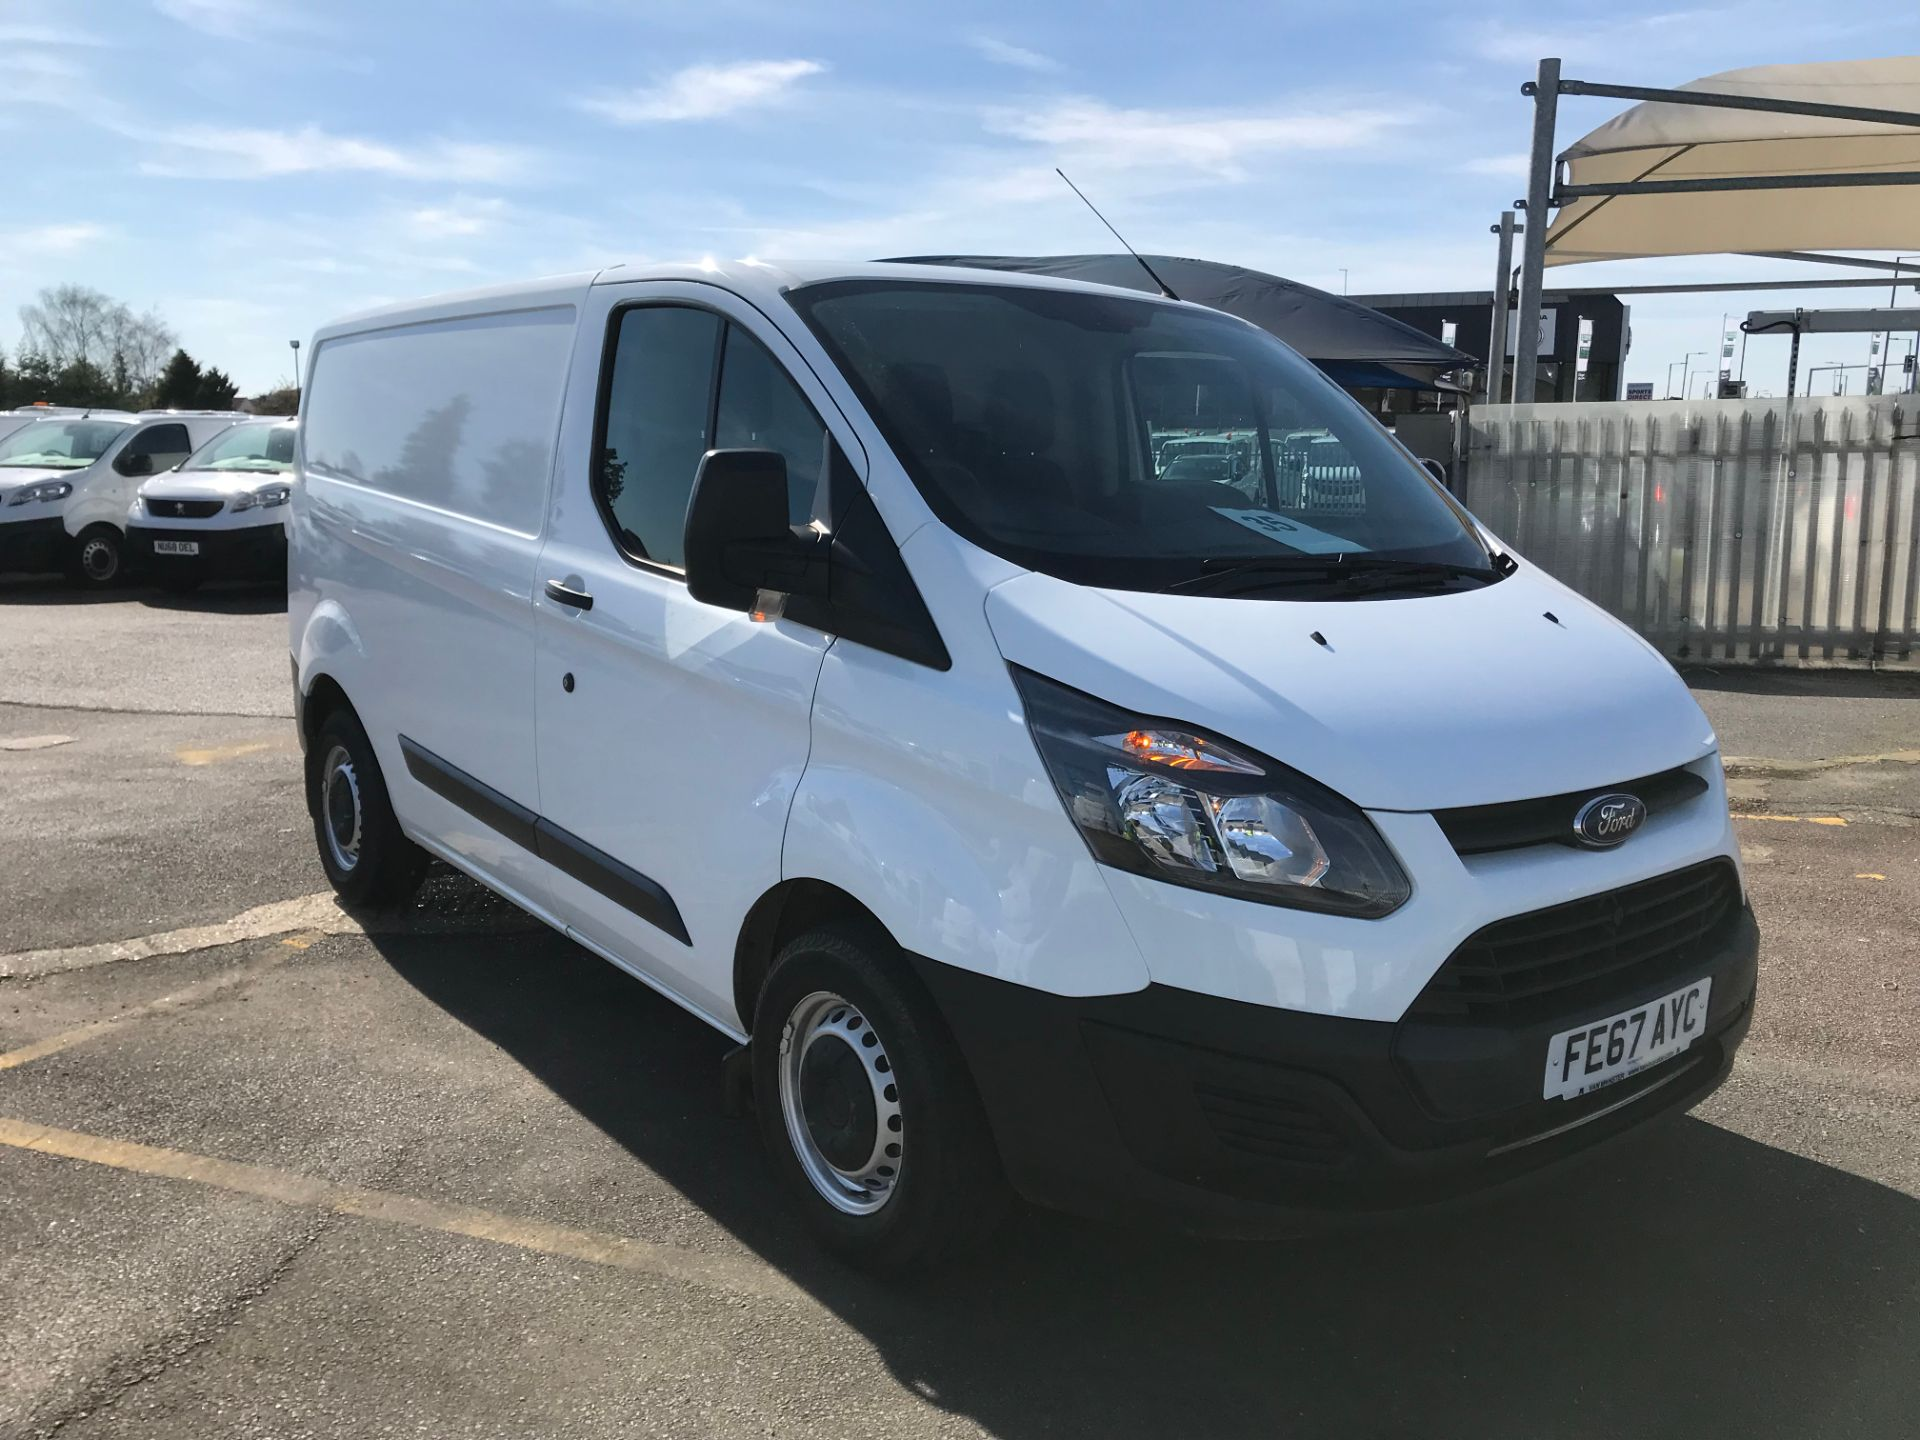 2017 Ford Transit Custom  290 L1 DIESEL FWD 2.0 TDCI 105PS LOW ROOF VAN EURO 6 (PARKING SENSORS) (FE67AYC)